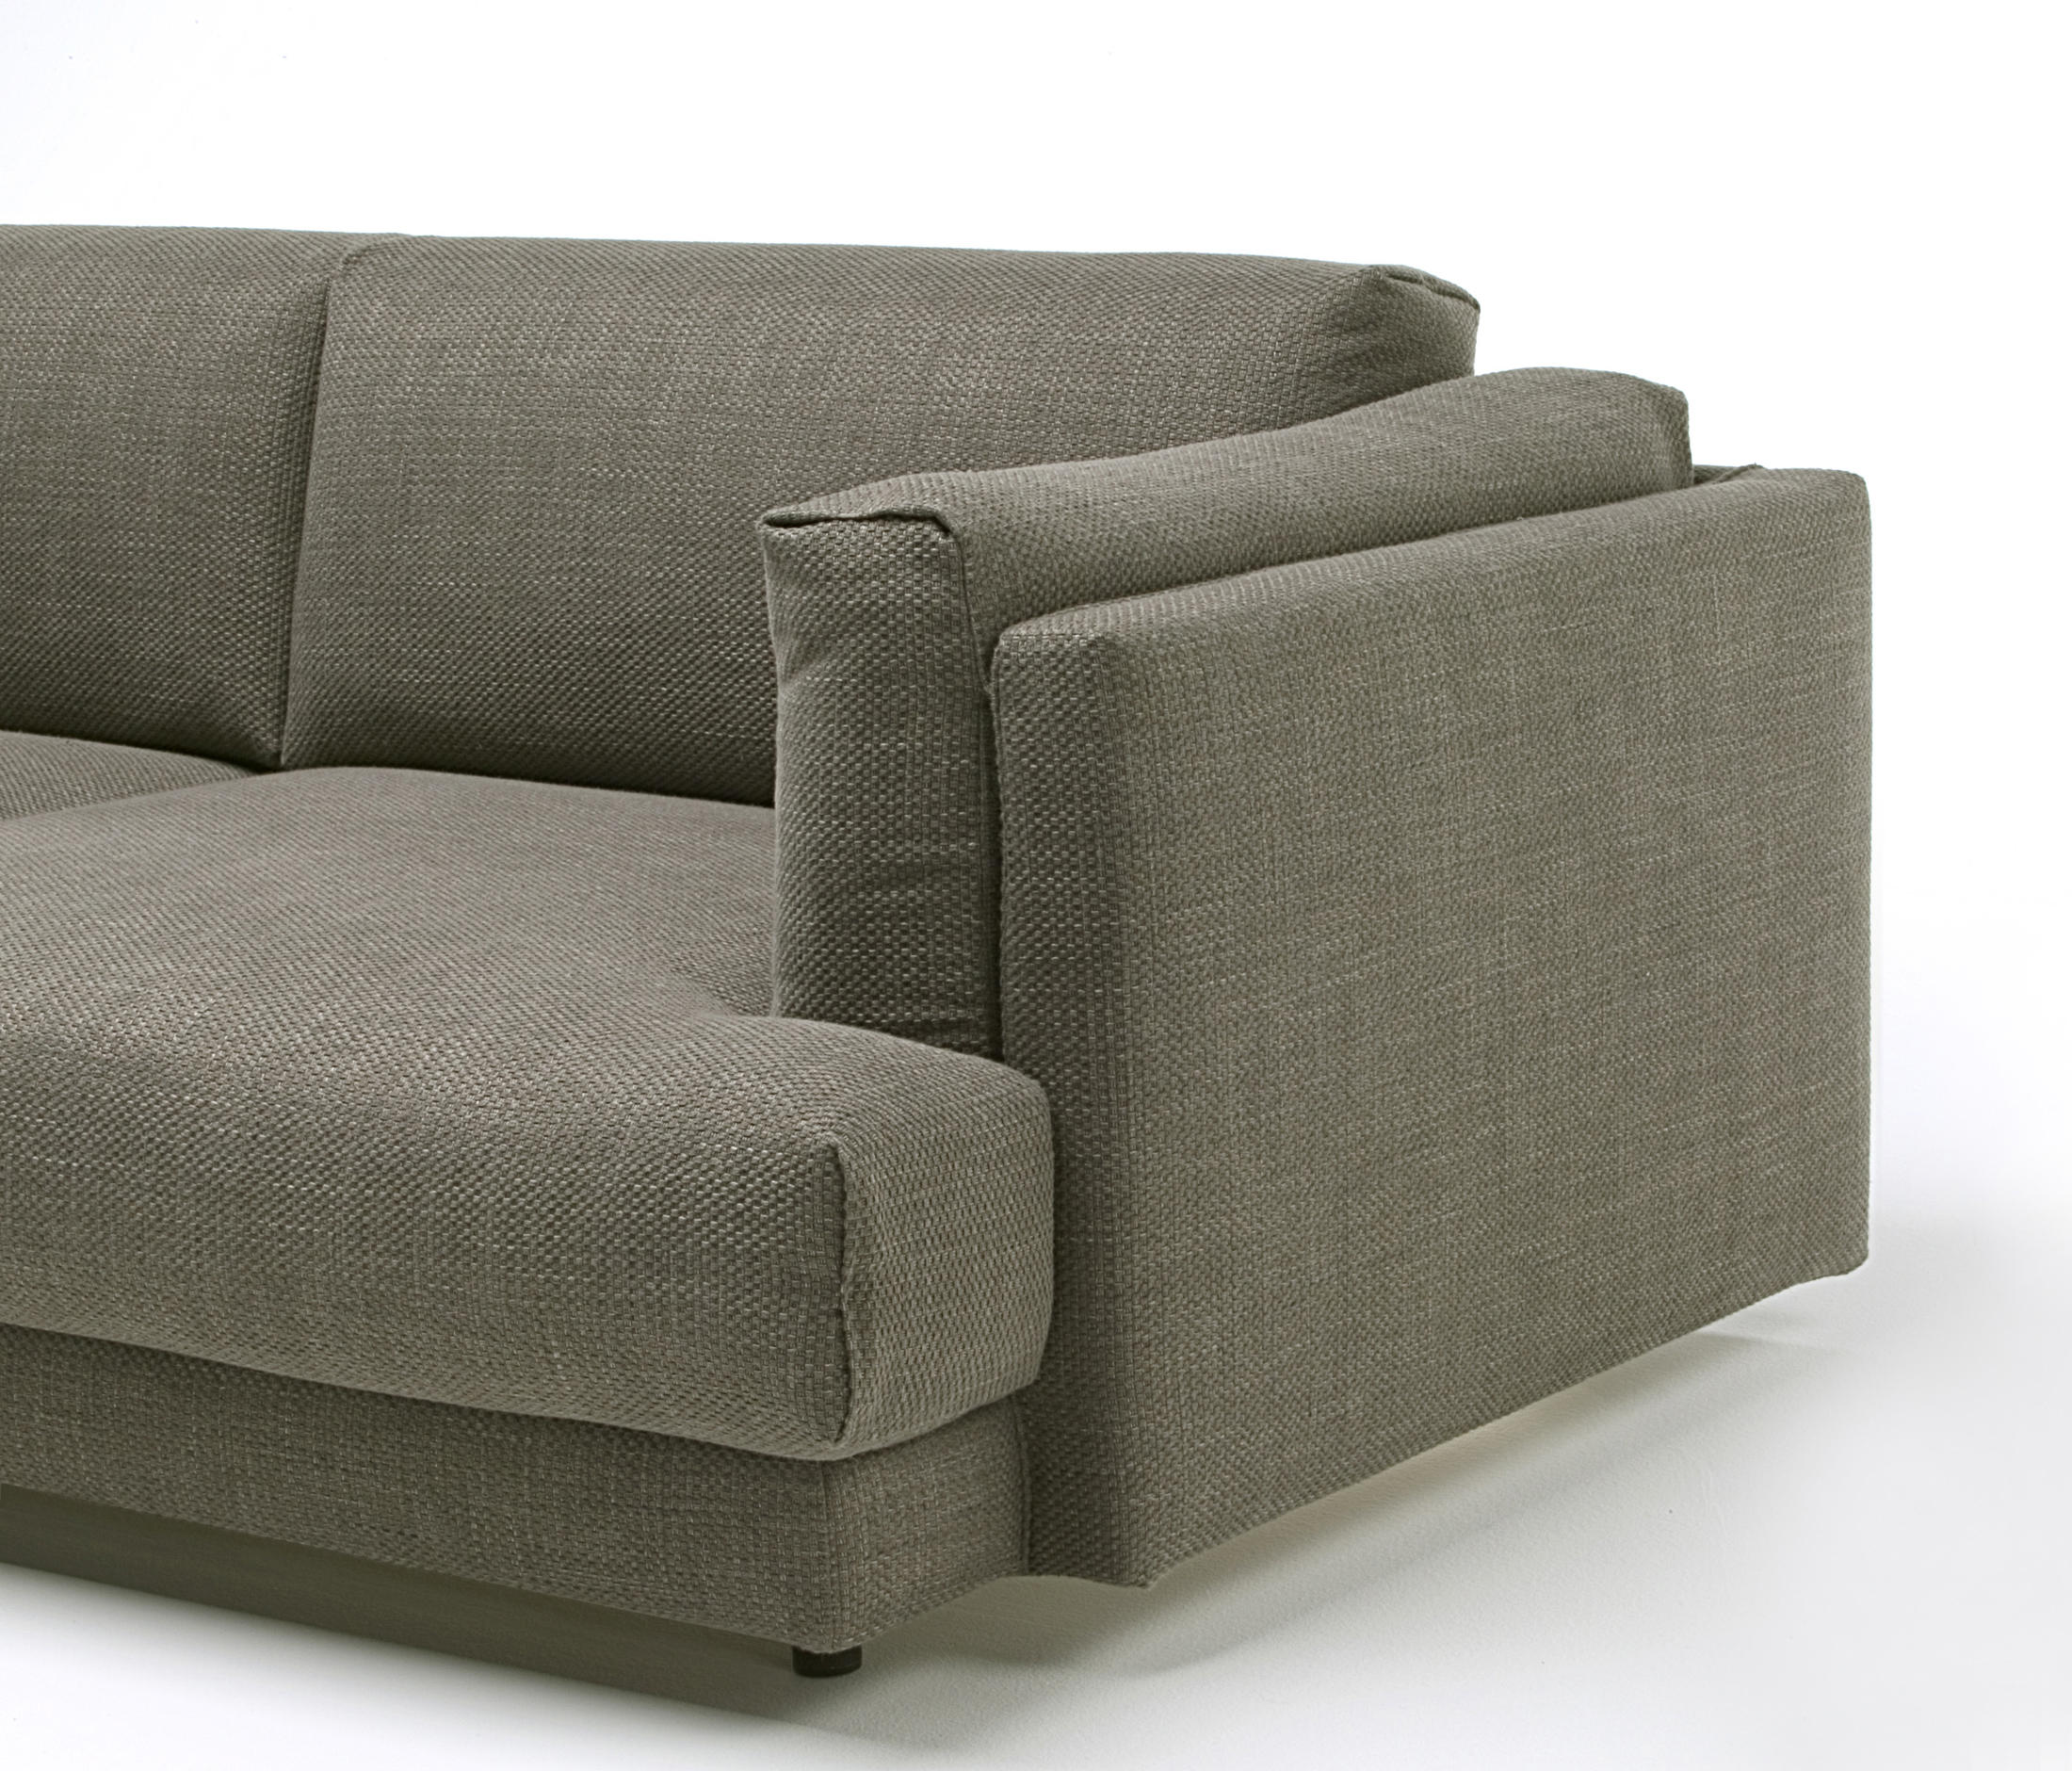 Divani Low Cost.Family Lounge Sofas From Living Divani Architonic